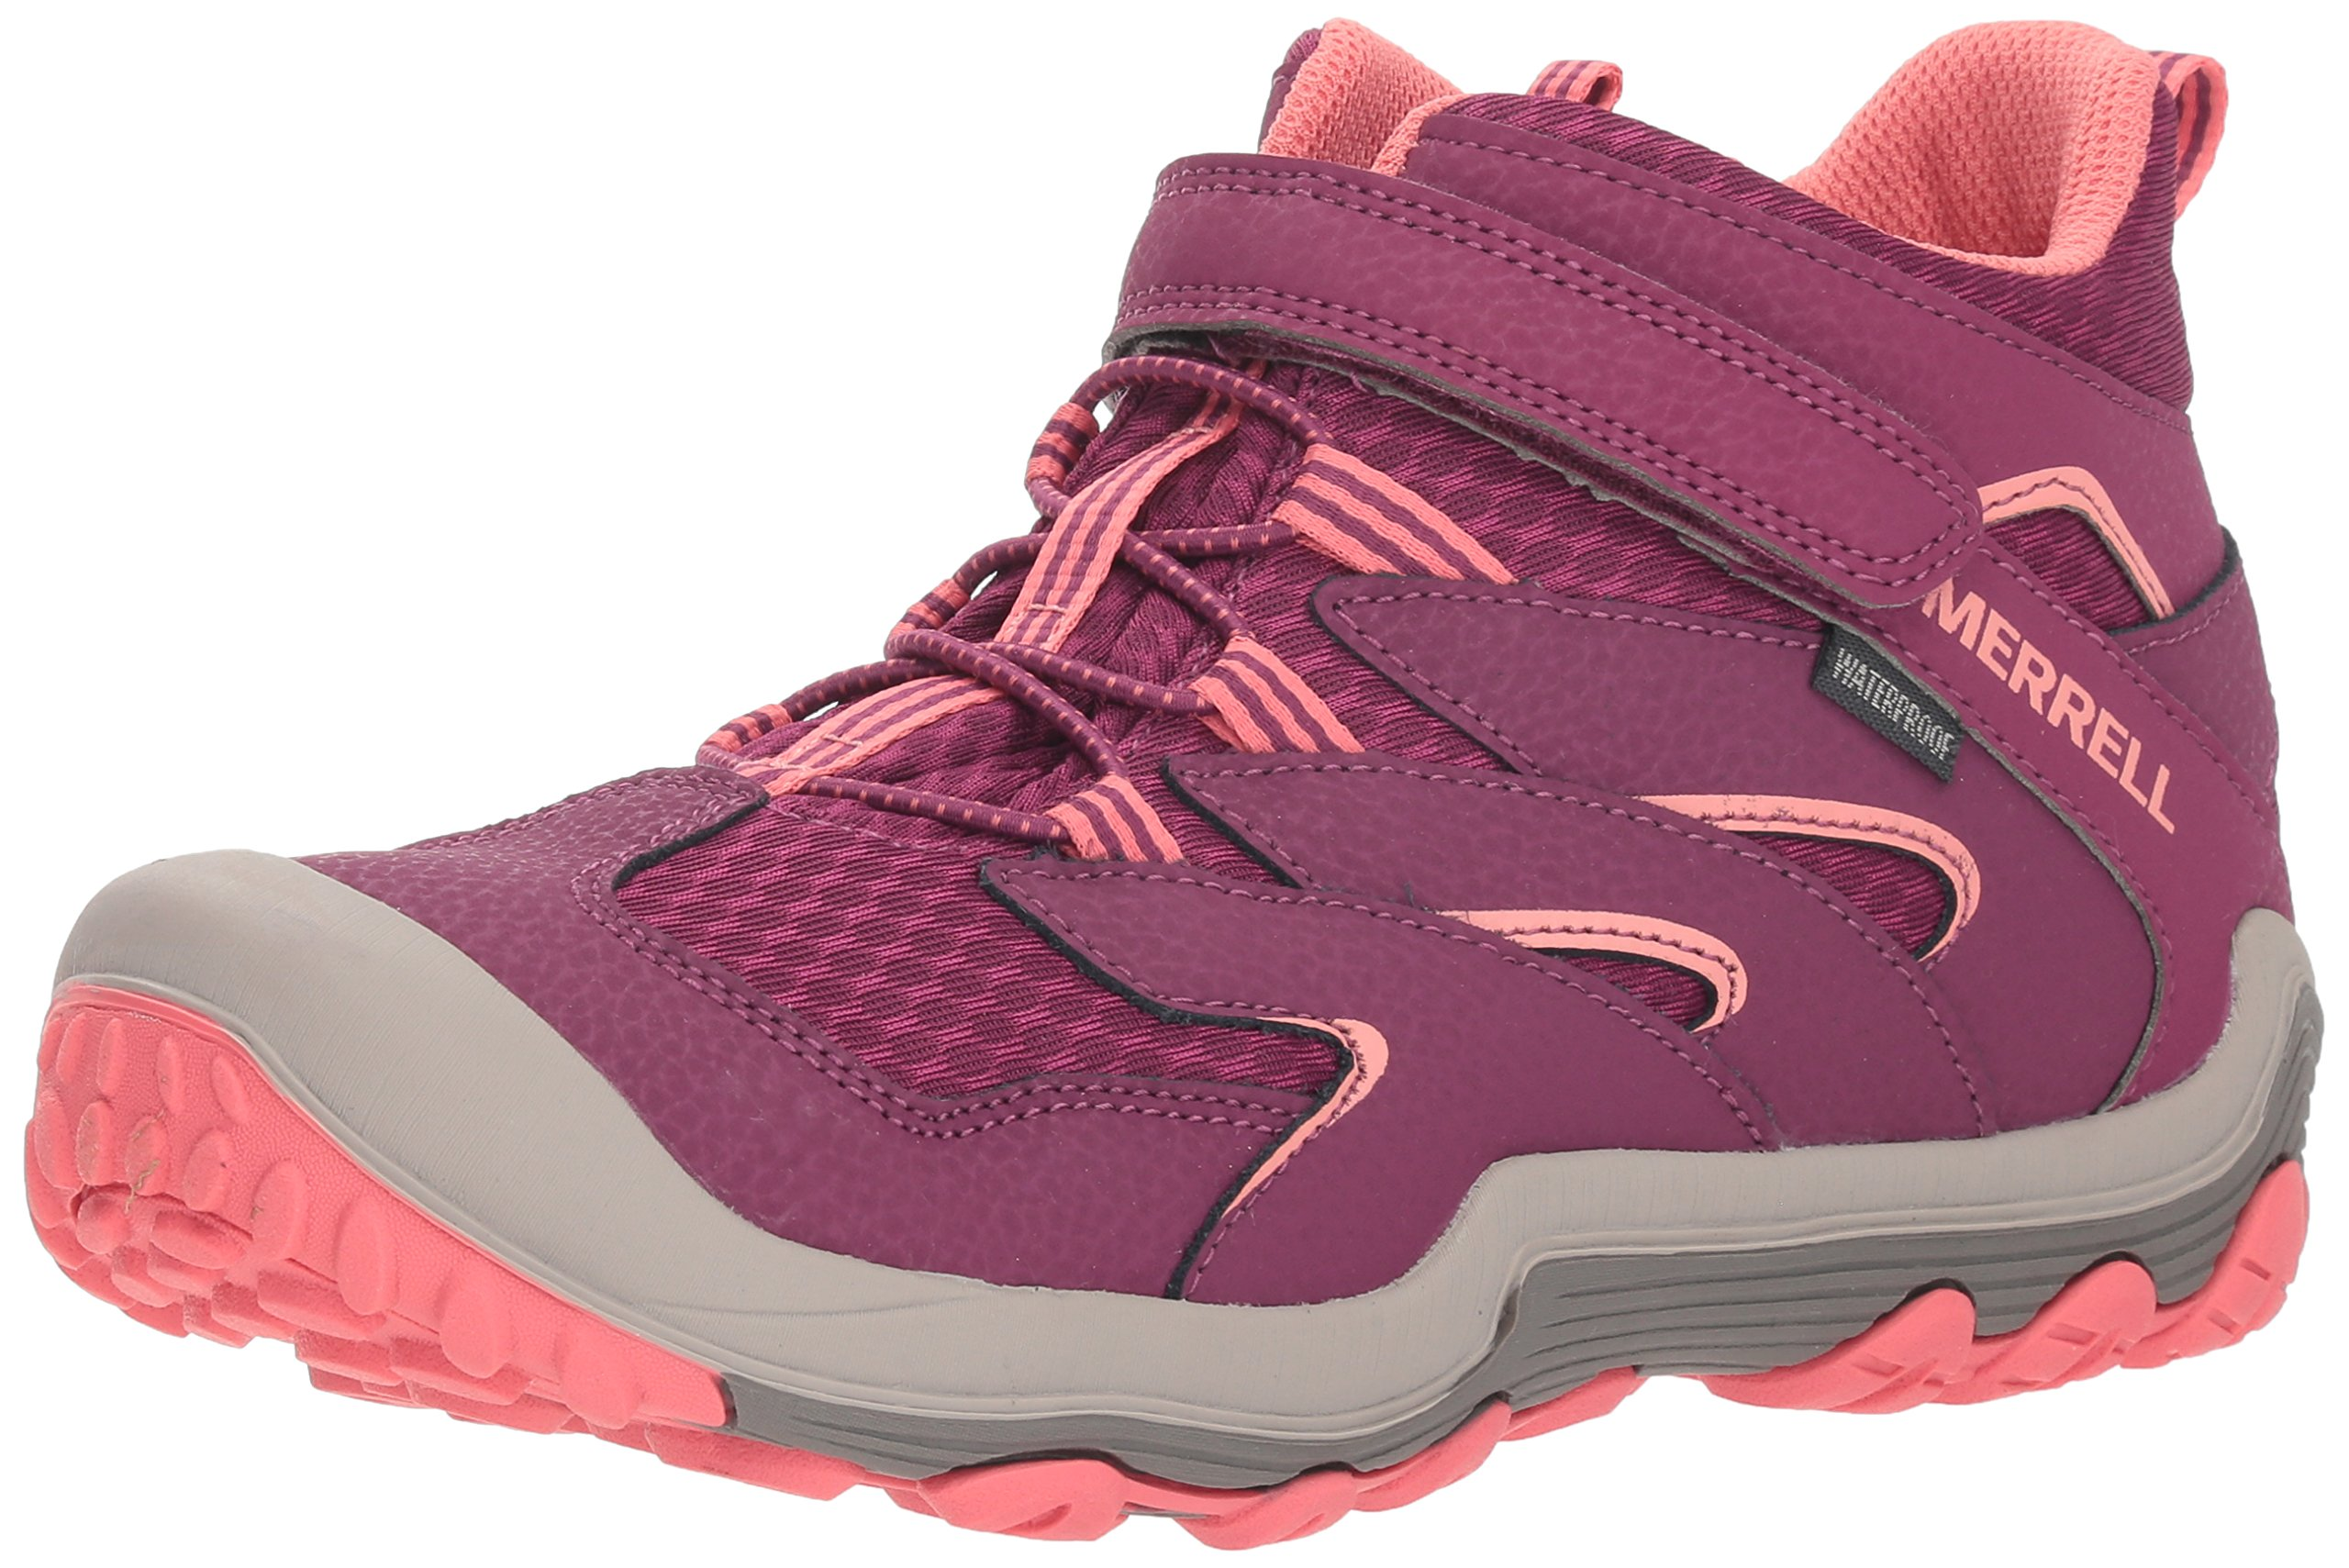 Merrell Girls' Chameleon 7 Access Mid A/C WTRPF Hiking Shoe, Berry/Coral, 13 Medium US Little Kid